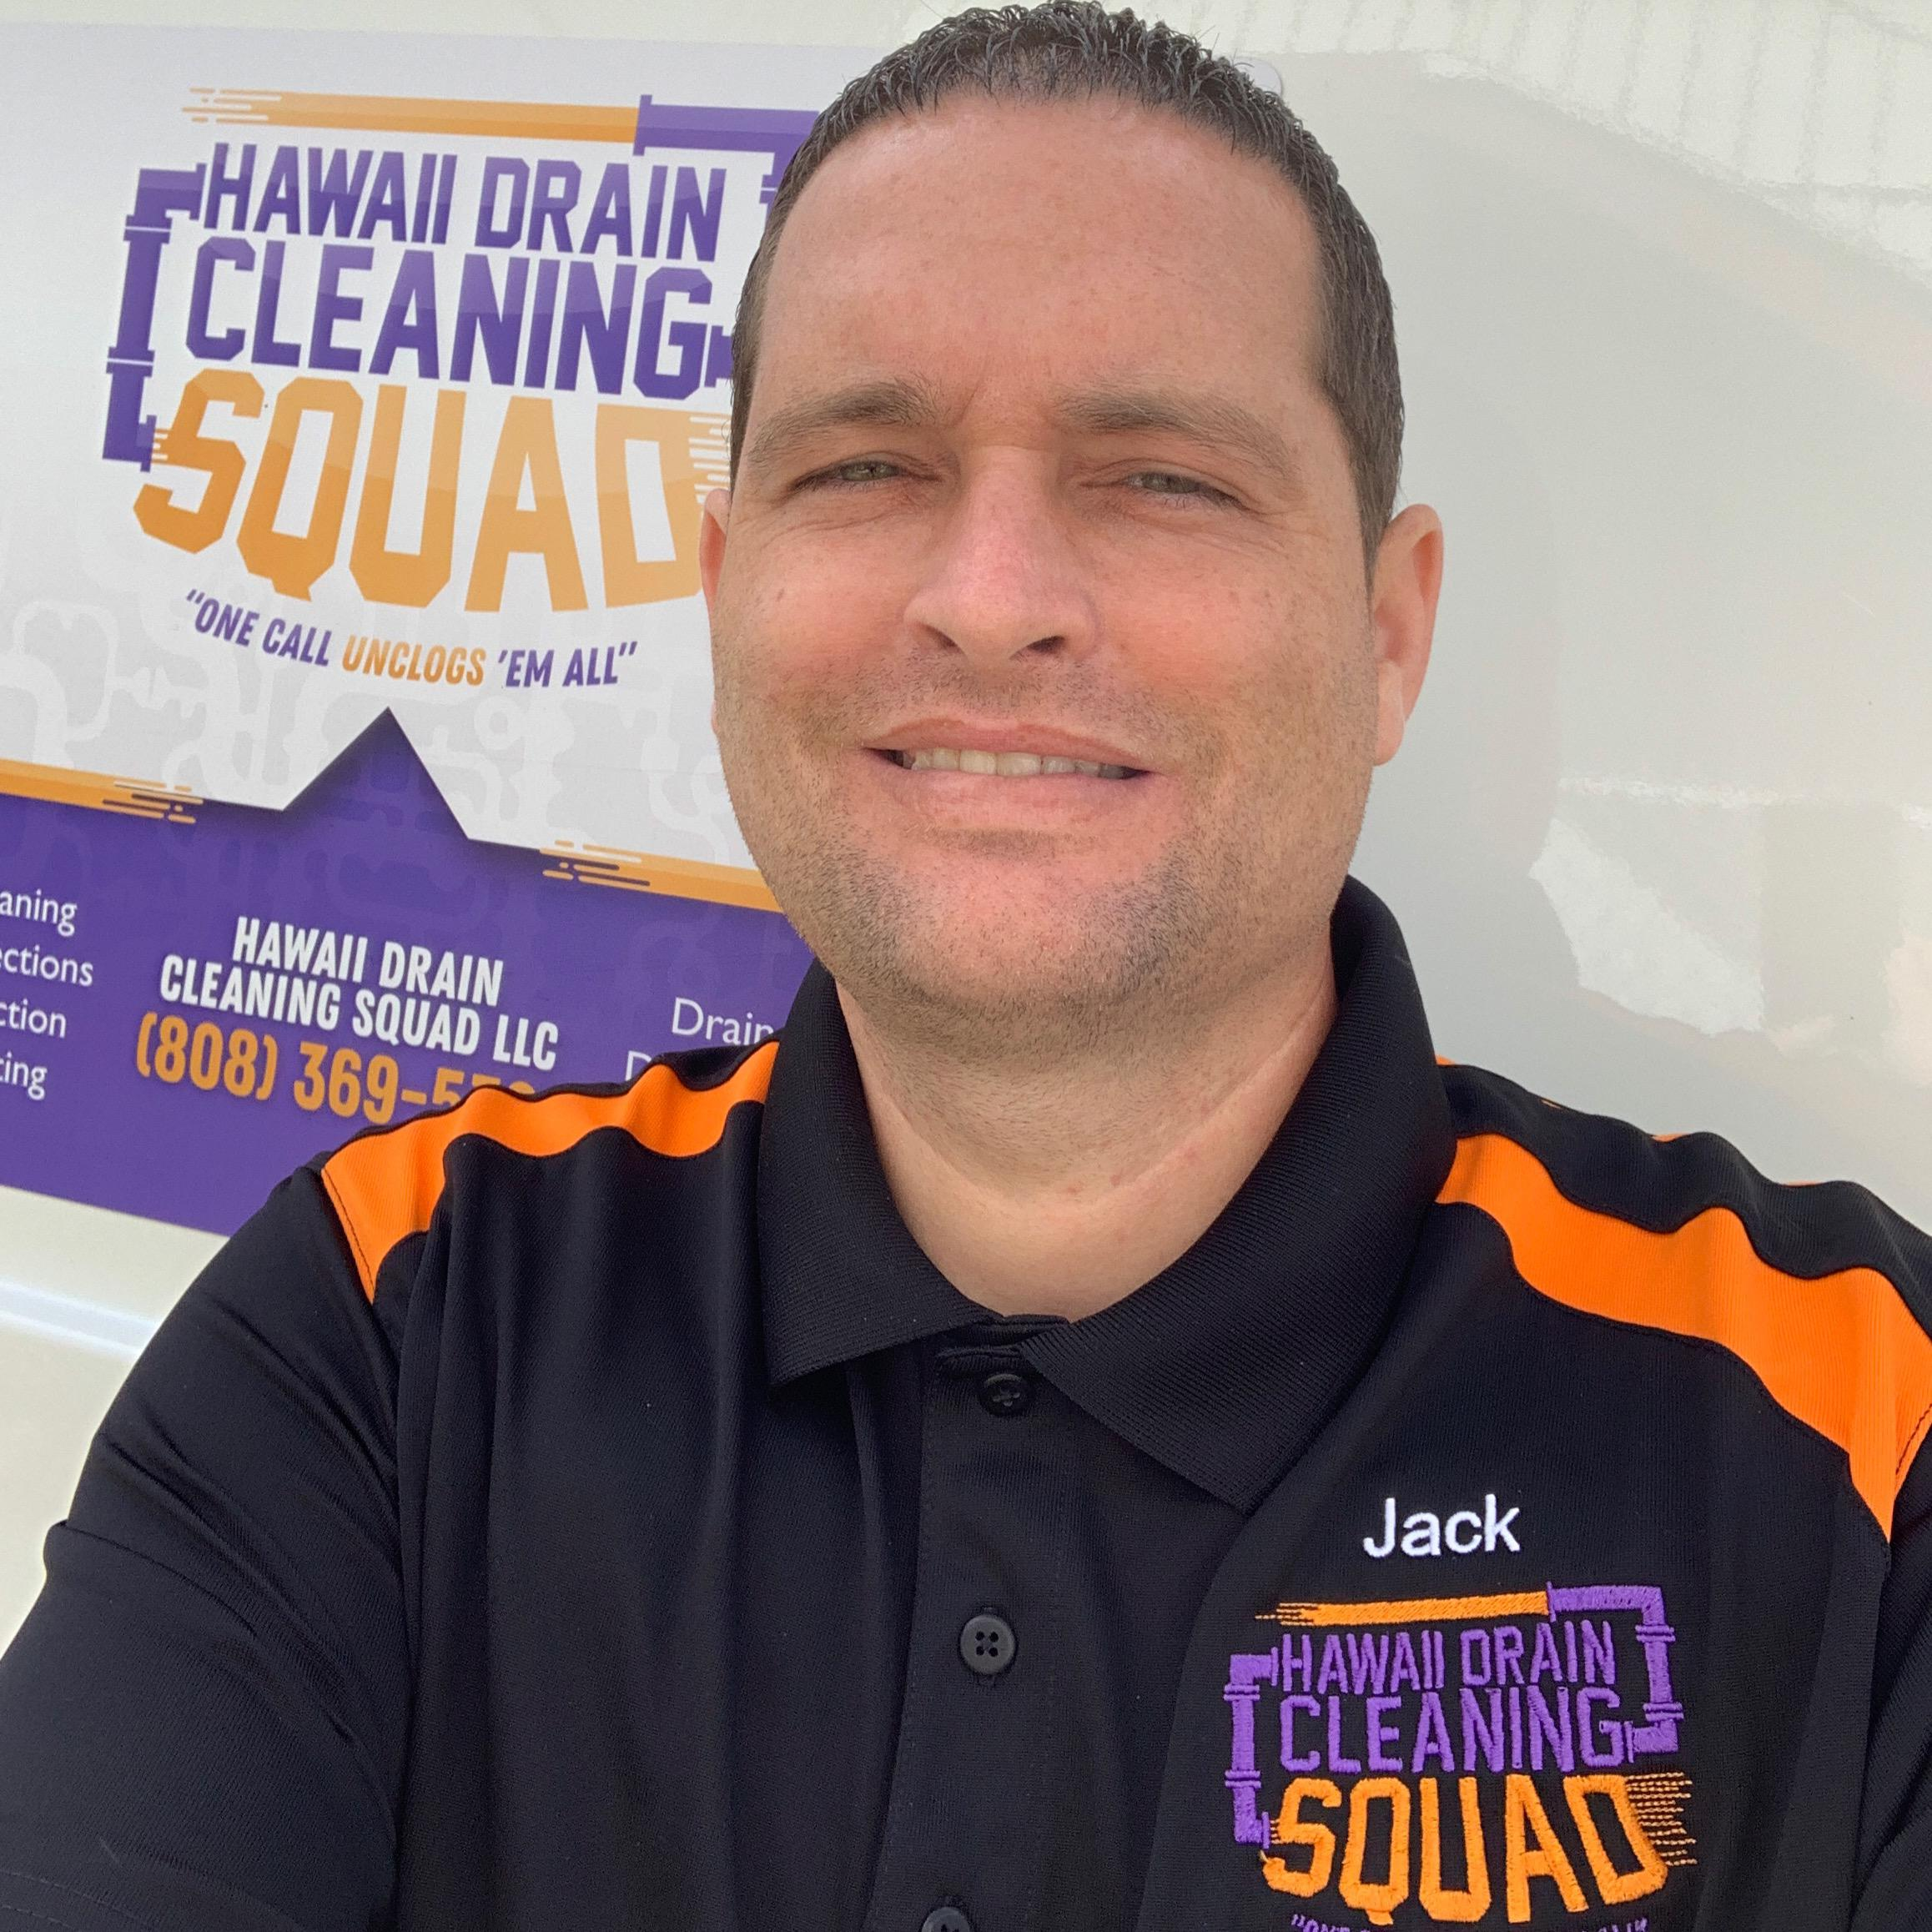 Hawaii Drain Cleaning Squad image 8